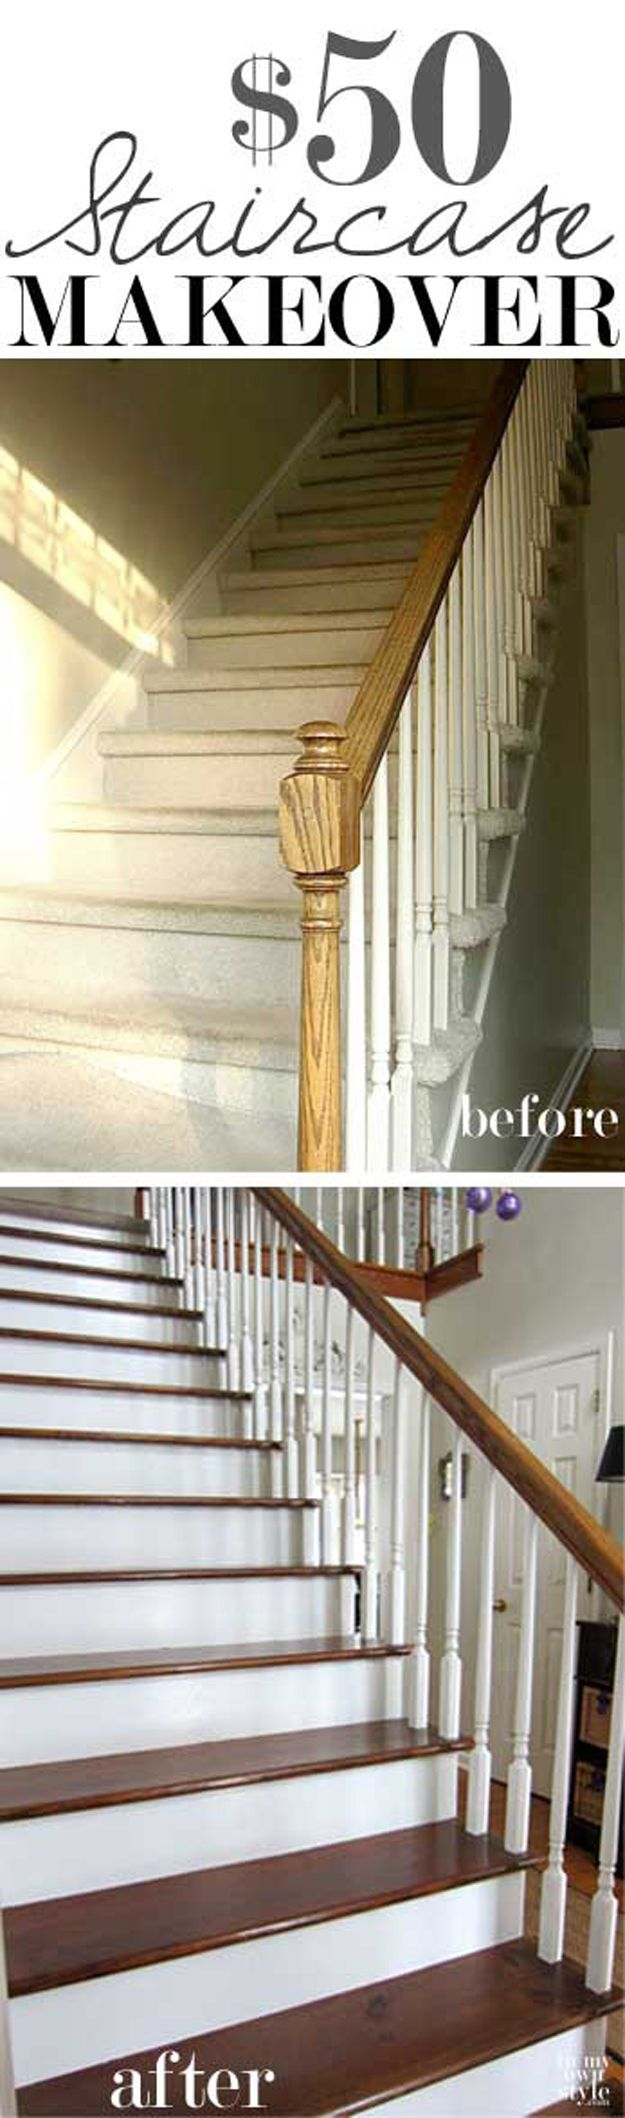 17 best ideas about staircase makeover on pinterest redo for Ideas for redoing stairs